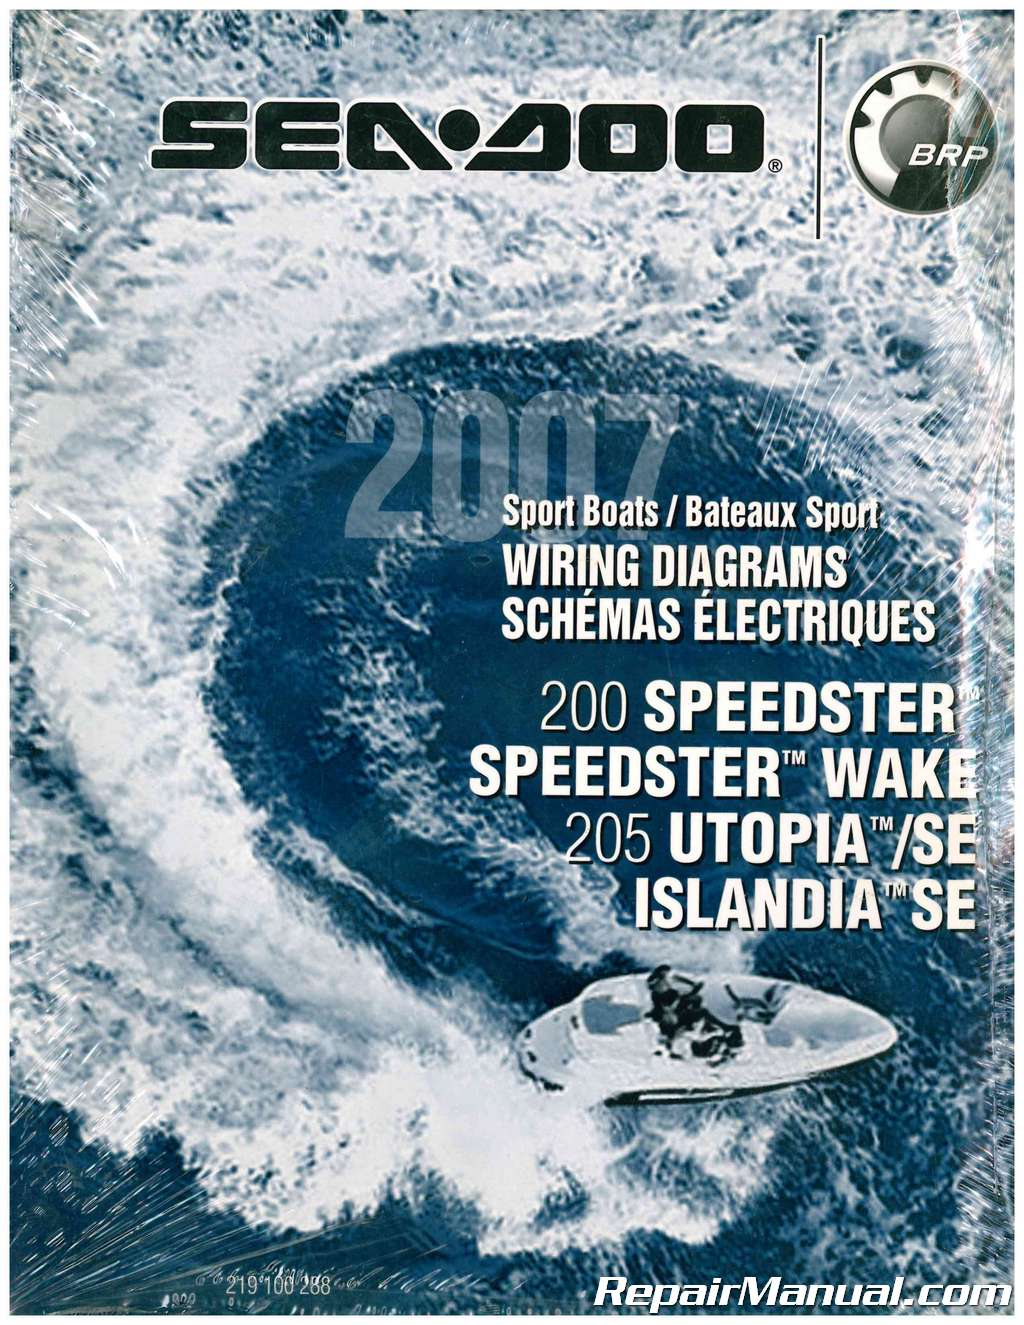 2007 Sea Doo Boat Wiring Diagram 200 Speedster Wake 205 Utopia Se Islandia